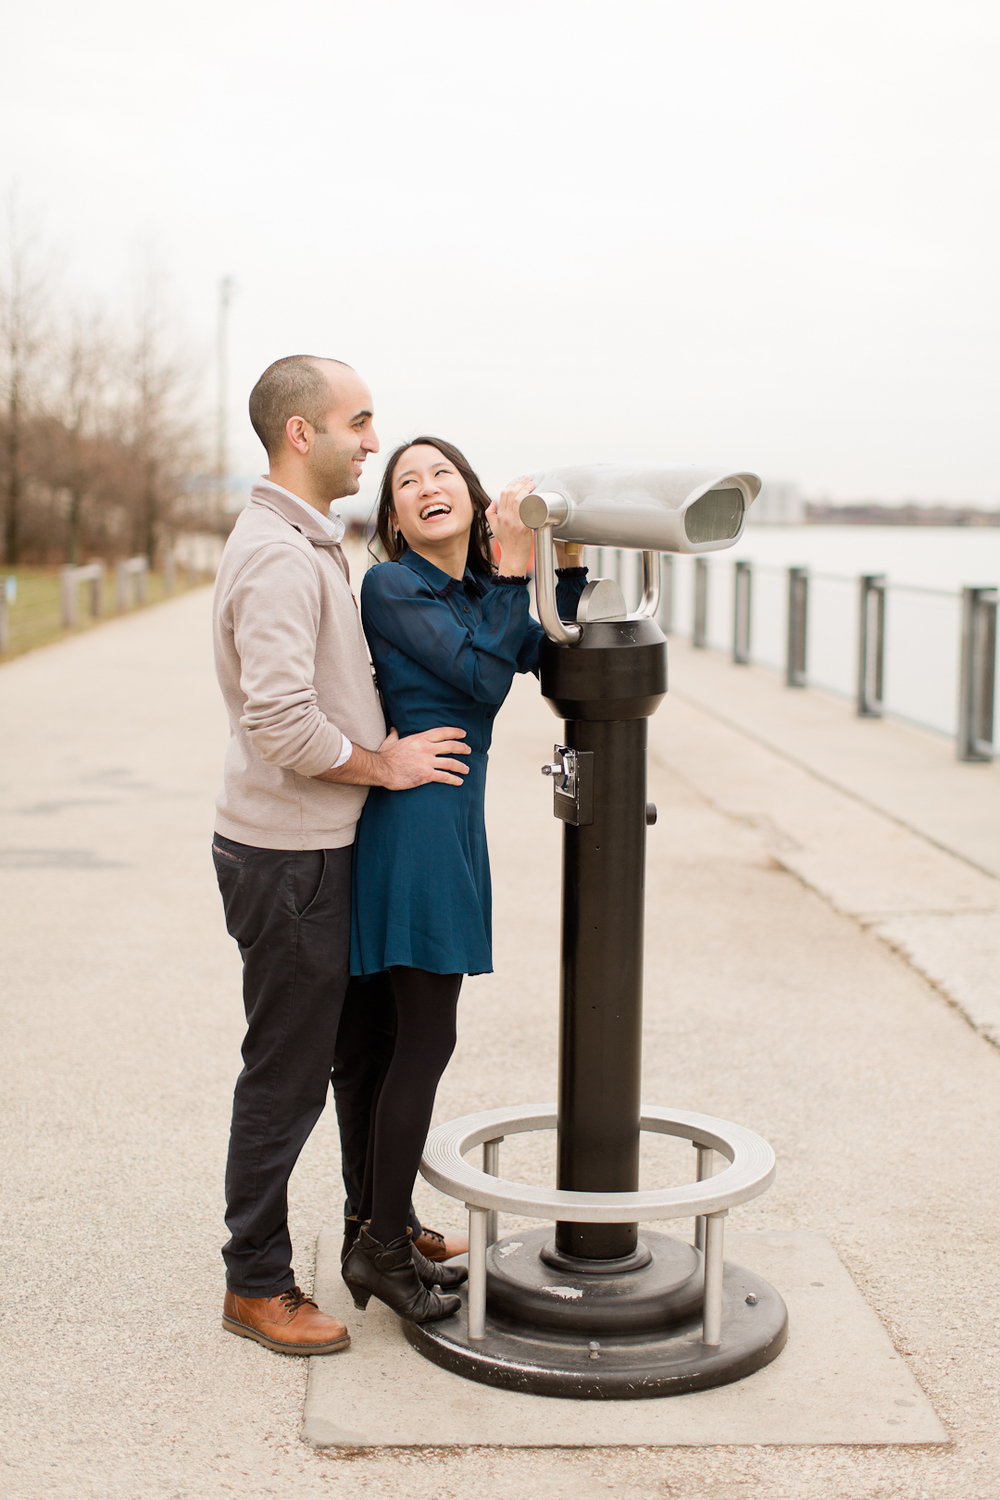 Melissa Kruse Photography - Kristine & David Engagement Photos-89.jpg